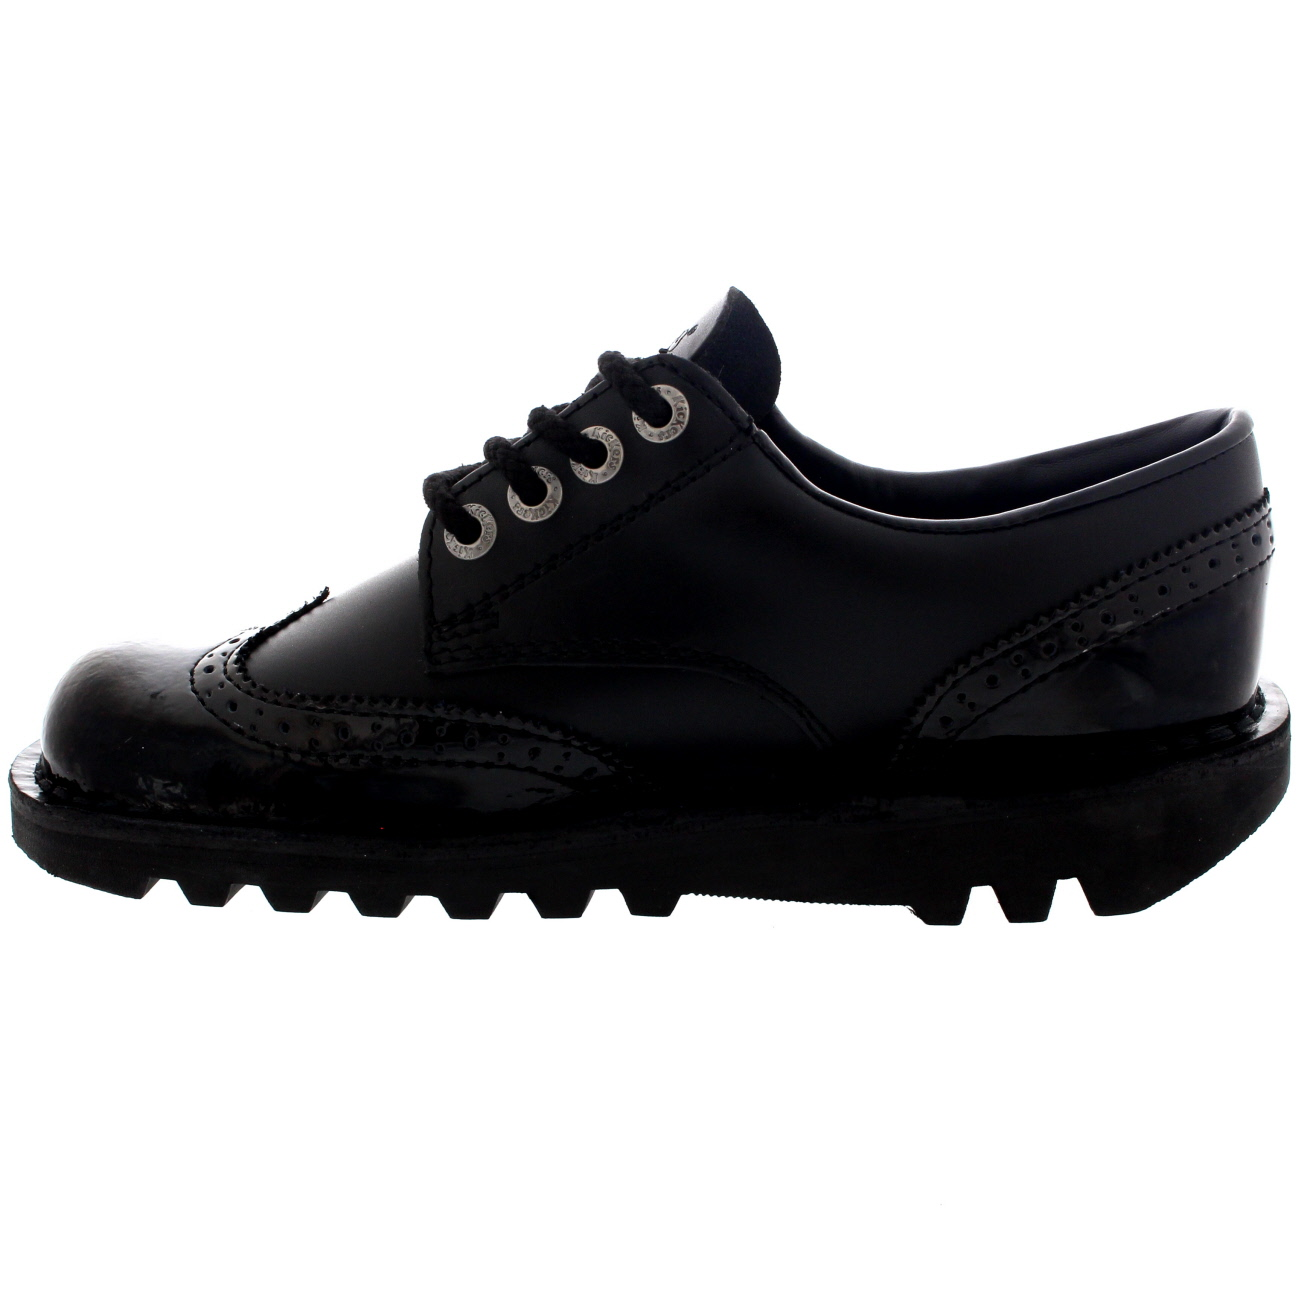 Womens Kickers Kick Lo Brogue Core Leather Patent Black School Work Shoes UK 3-8